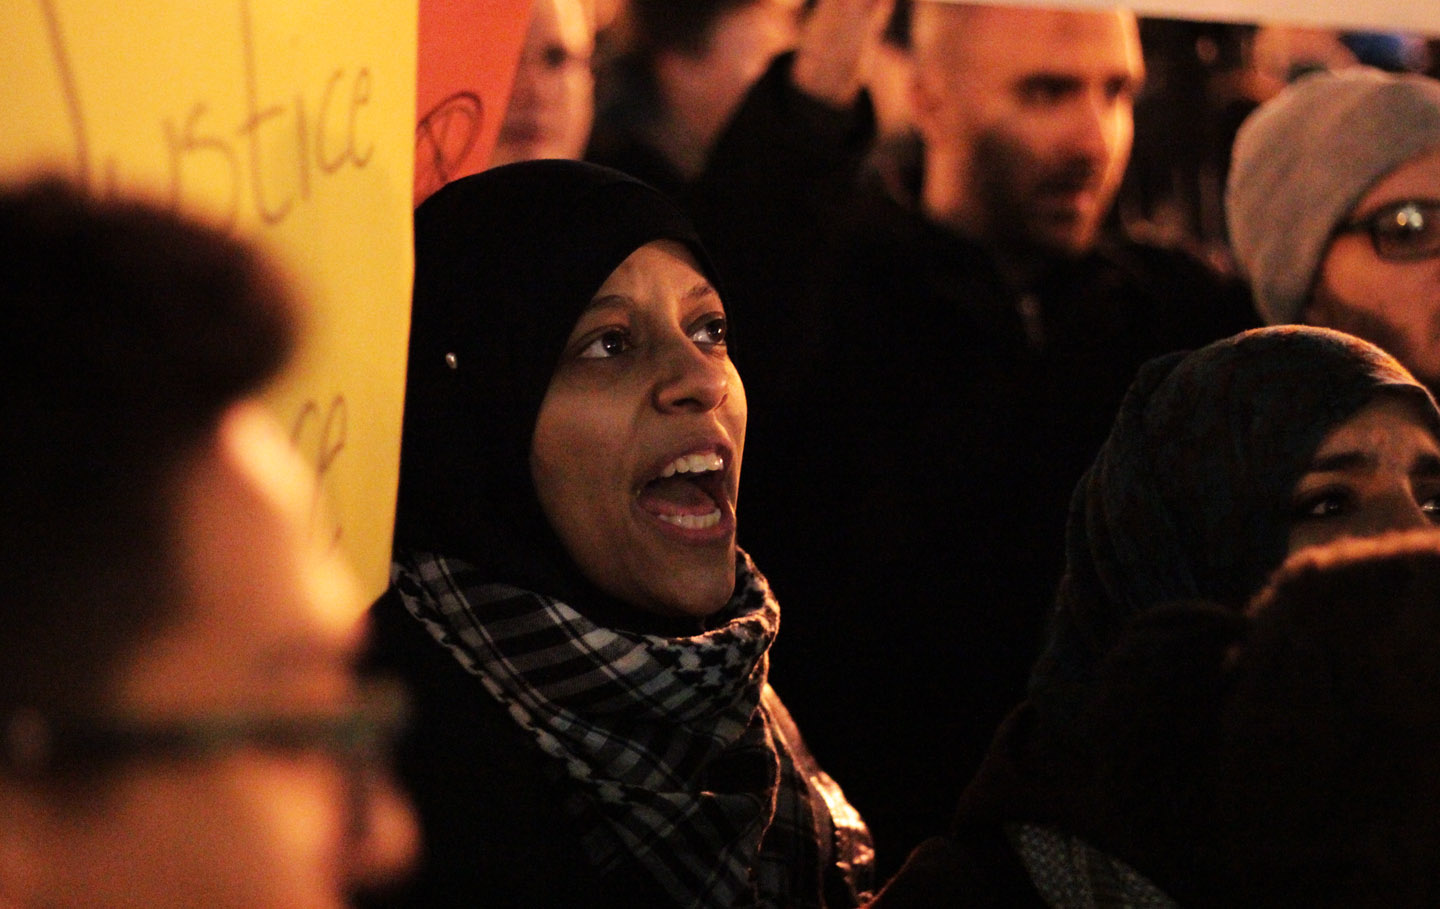 Protester from the Arab American Association of New York. Photo: Pauline Dolle/A Journey through NYC religions